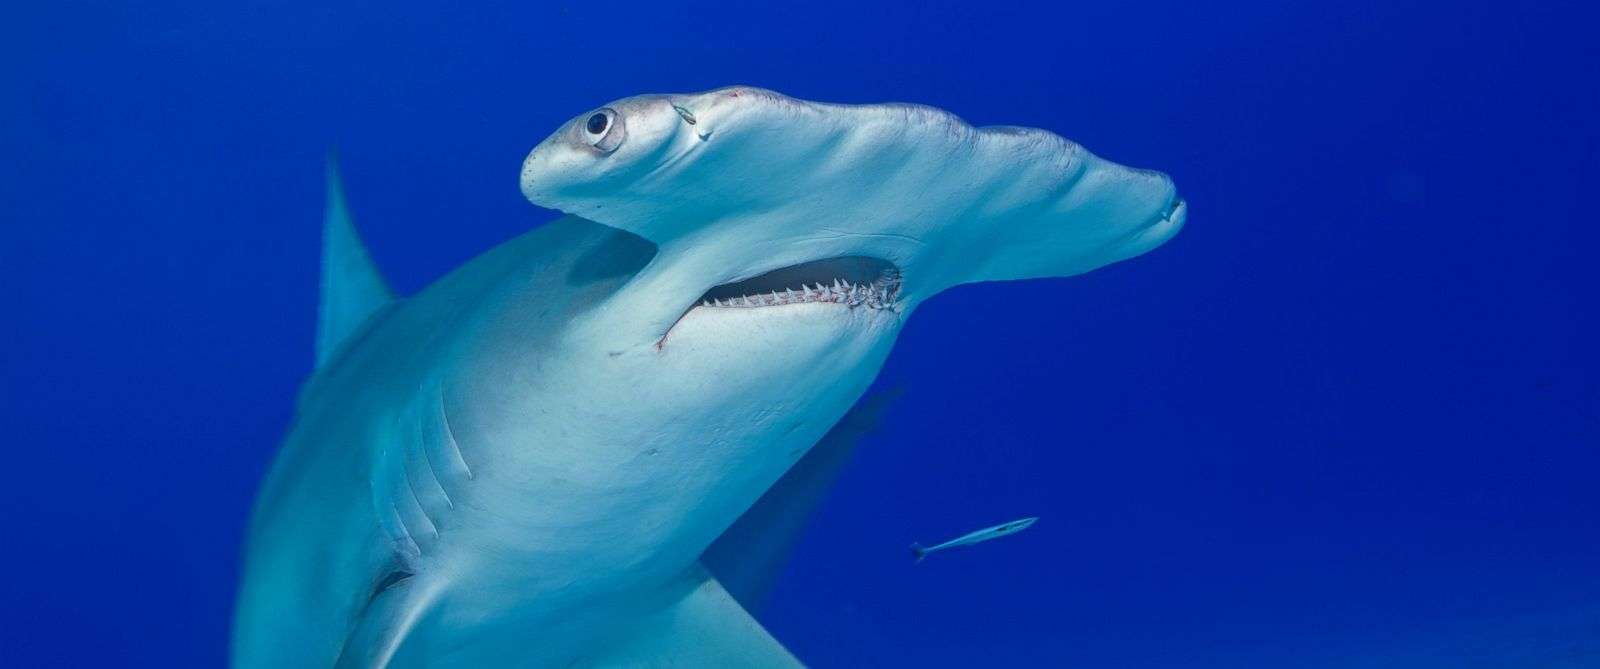 PHOTO: A great hammerhead shark is pictured in this stock image.